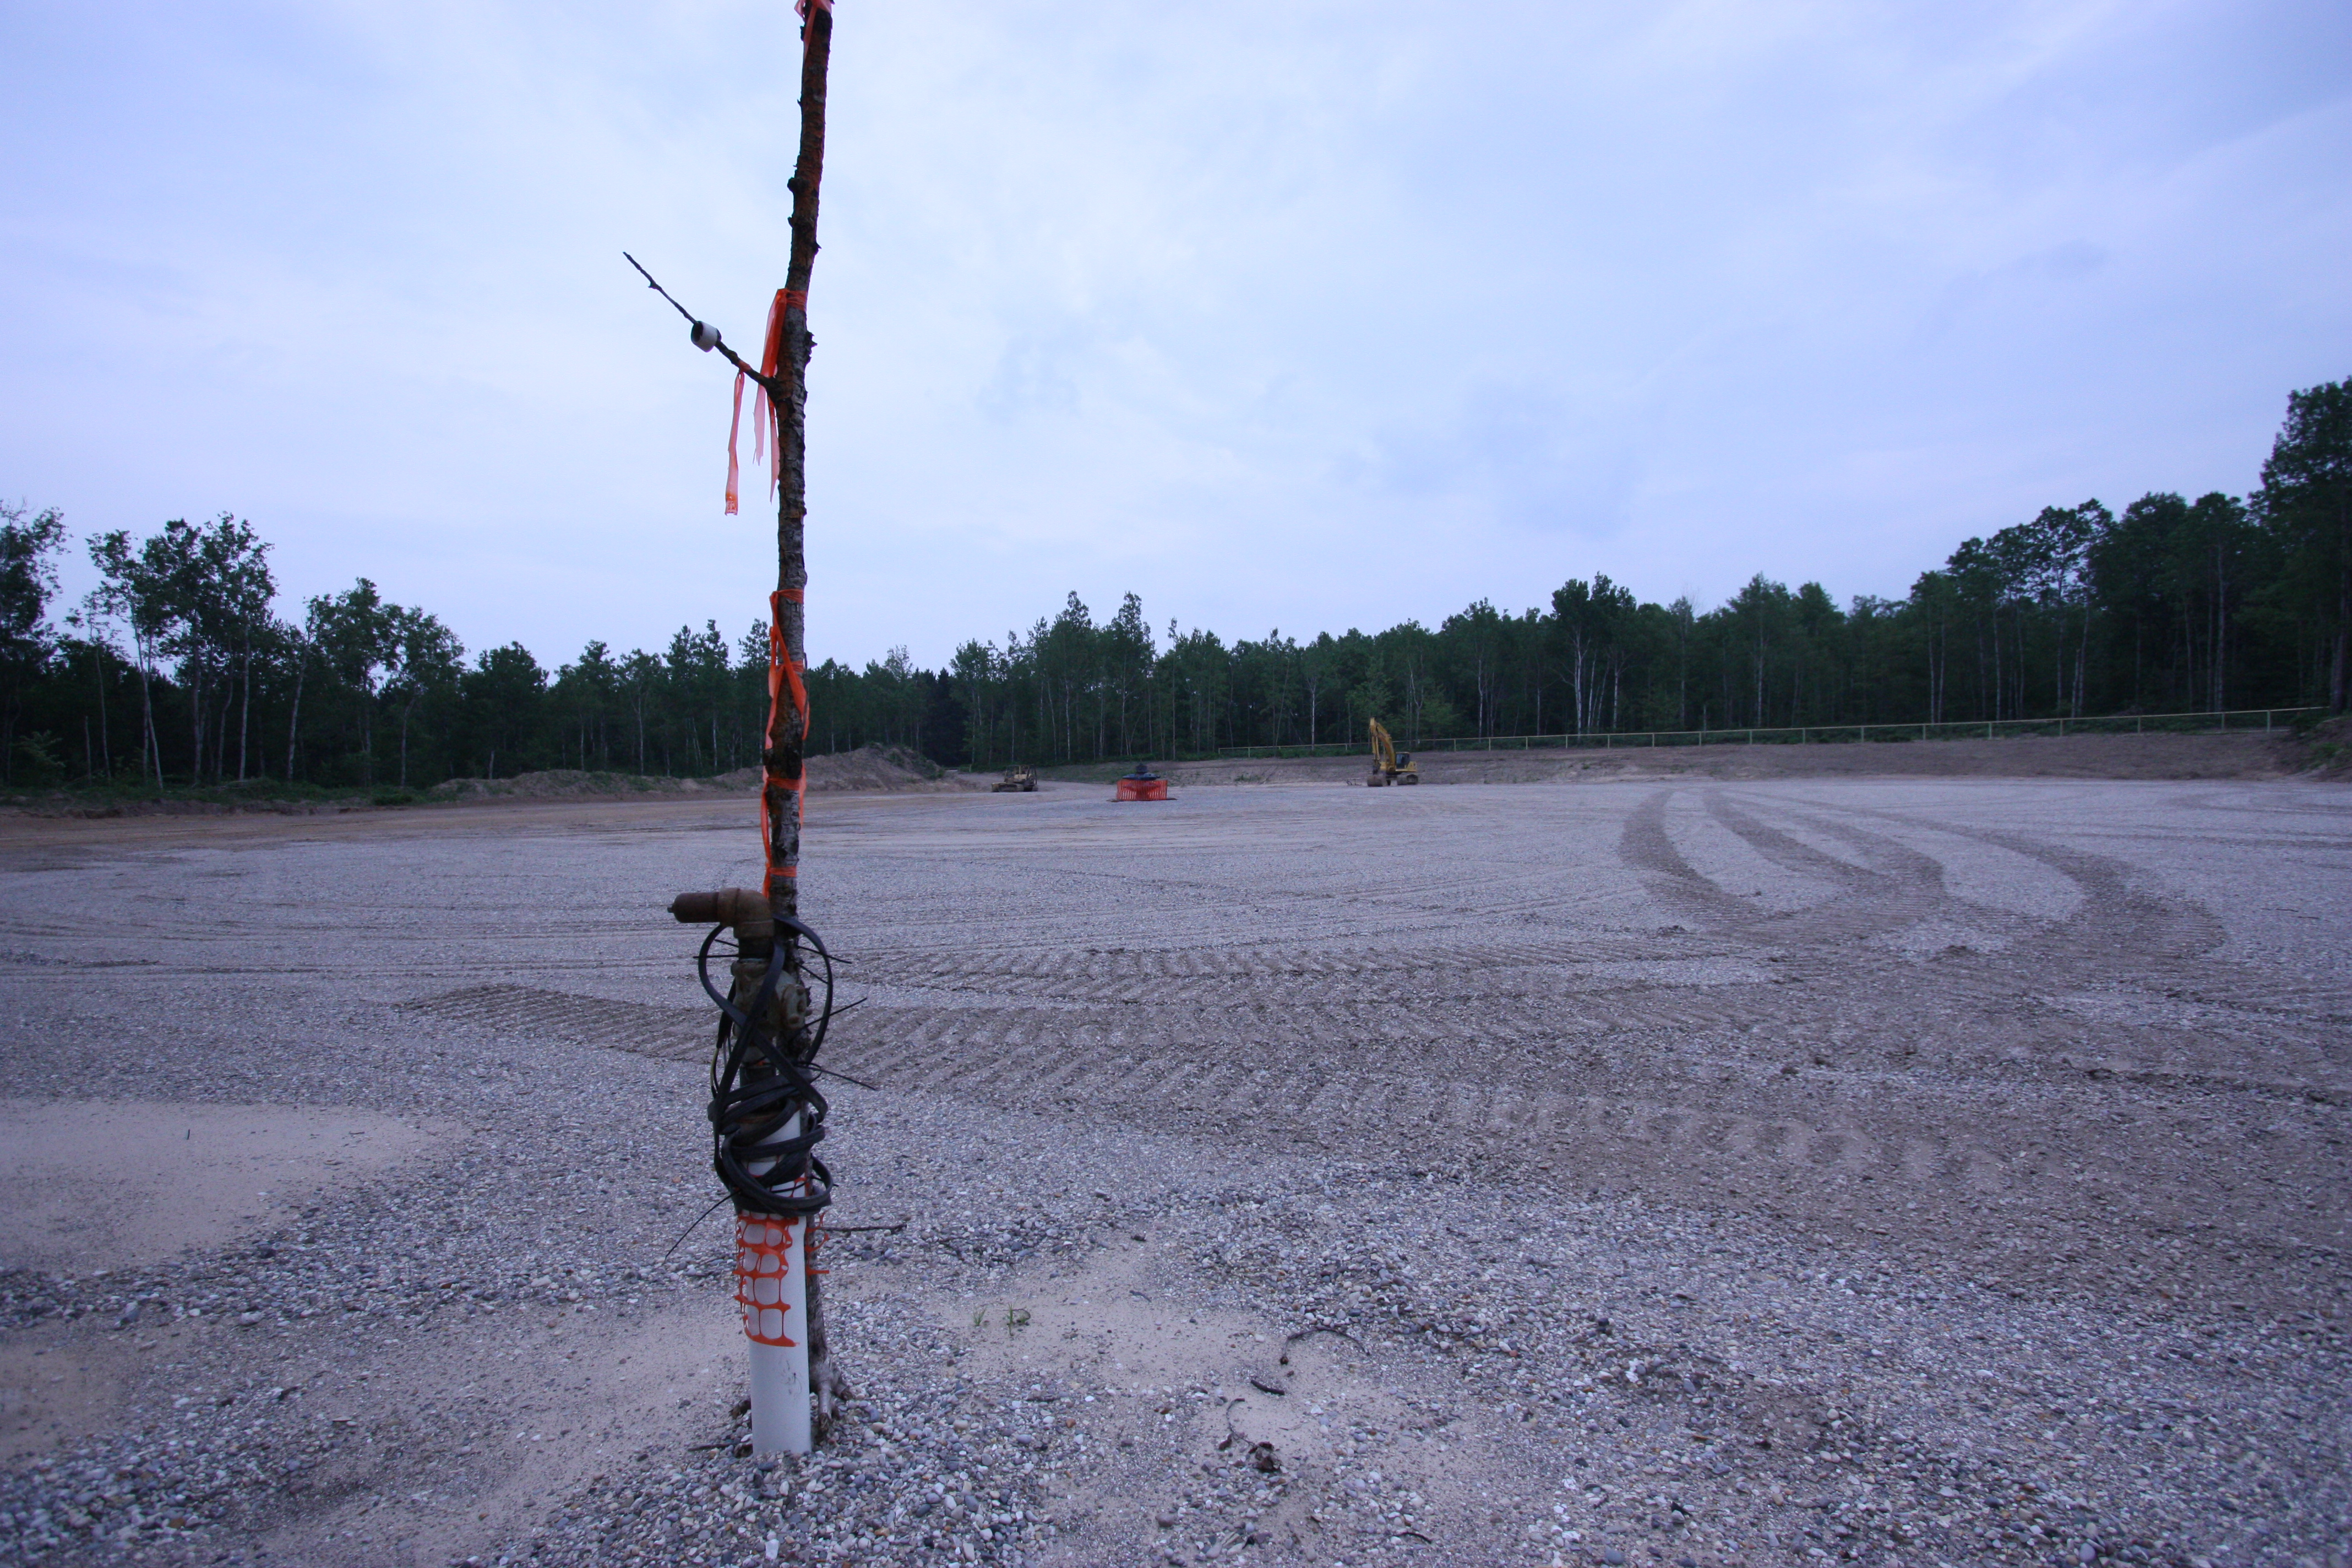 Water well drilled on the site of the Mancelona 1-28 HD1 horizontal frack well, on state forest land. The frackers use public groundwater for free.